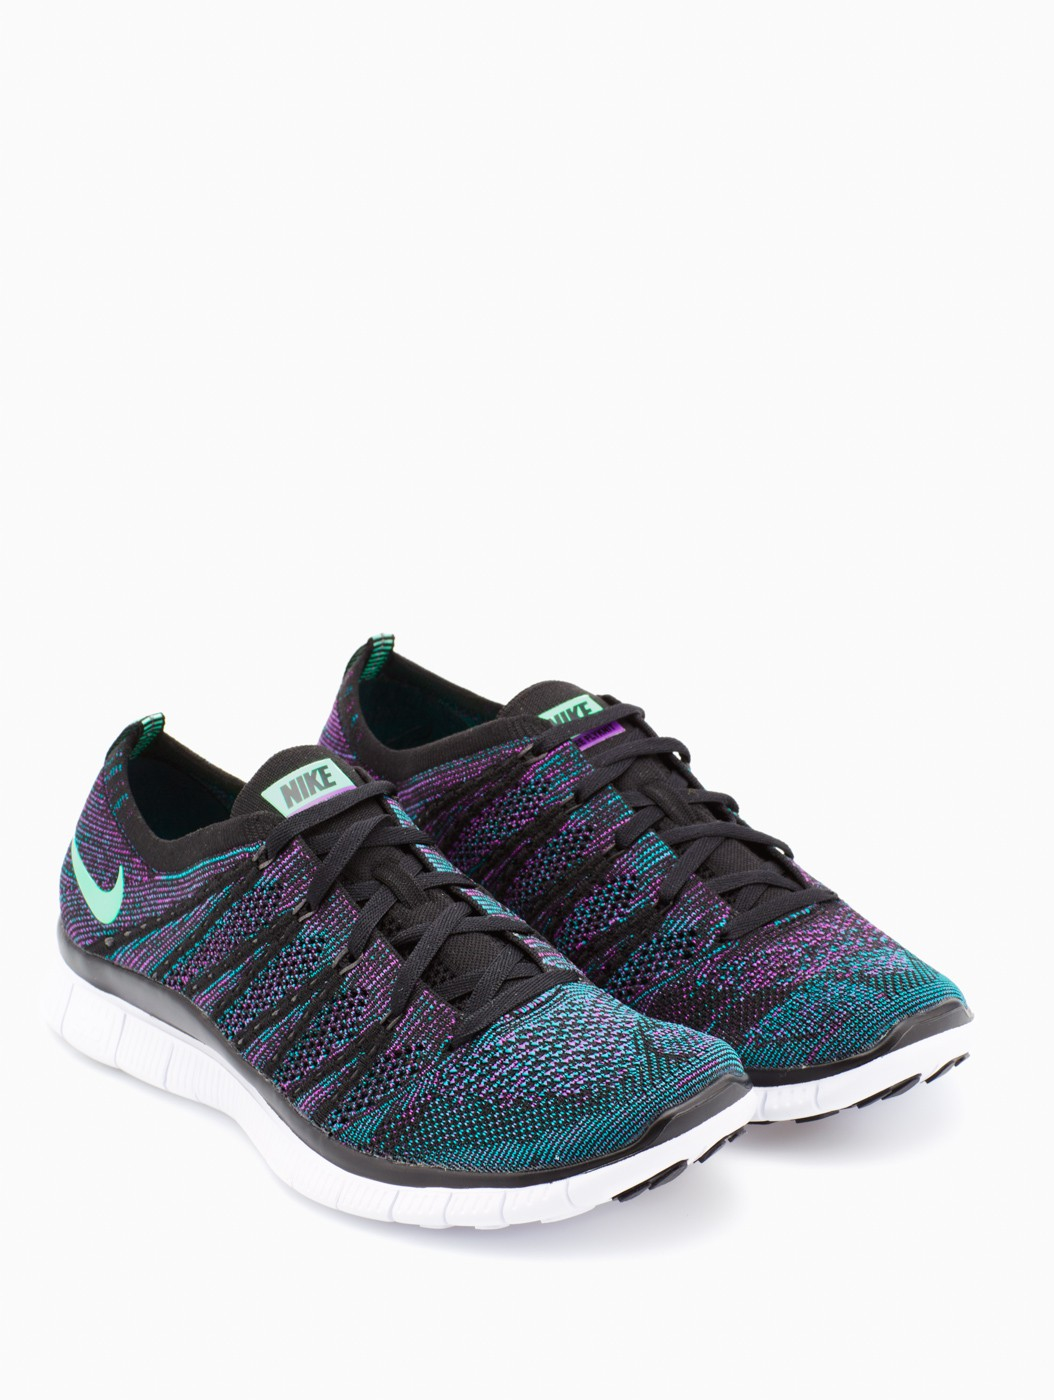 nike free flyknit nsw in blue for men lyst. Black Bedroom Furniture Sets. Home Design Ideas